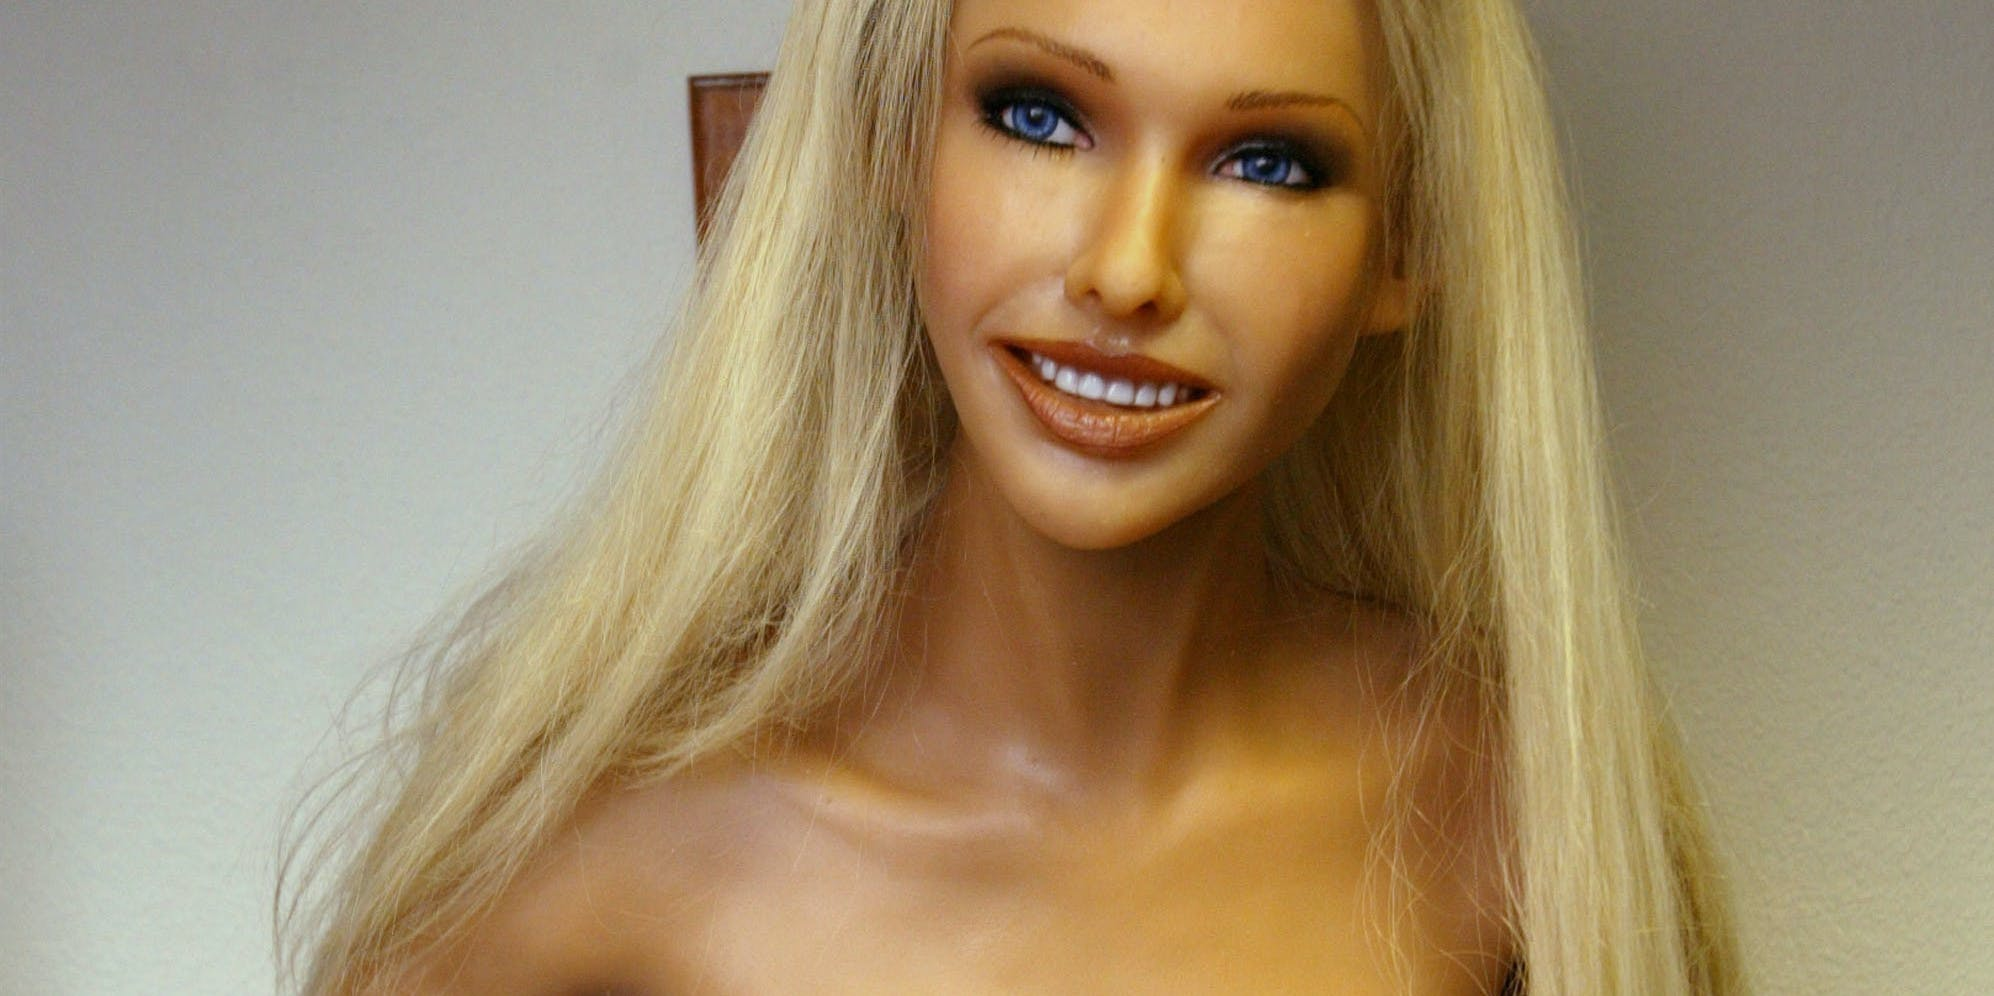 A finished silicone RealDoll sex doll stands topless at the Abyss Creations factory on February 5, 2004 in San Marcos, California. RealDolls are created using Hollywood special effects technology and have orifices made of a special soft grade of silicone for people who want to 'enhance their sex lives', according to Abyss Creations literature. Standard female models sell for about $6000, males for $7000, and are sold only over the Internet. 'Shemales' and other special orders are also available.